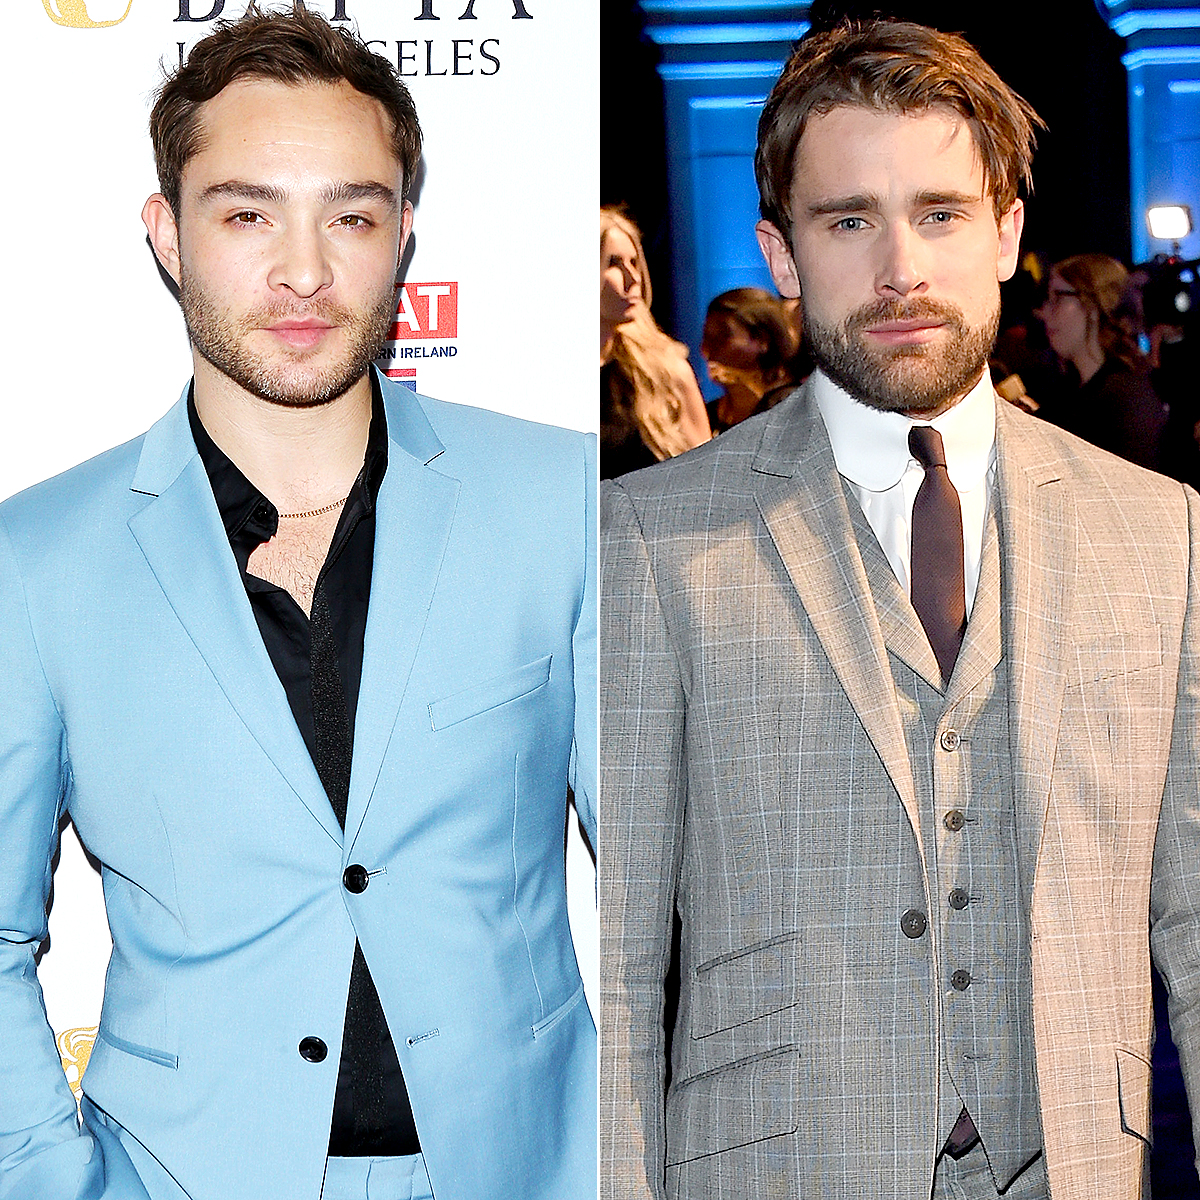 Ed Westwick replaced in BBC drama after sexual assault allegations